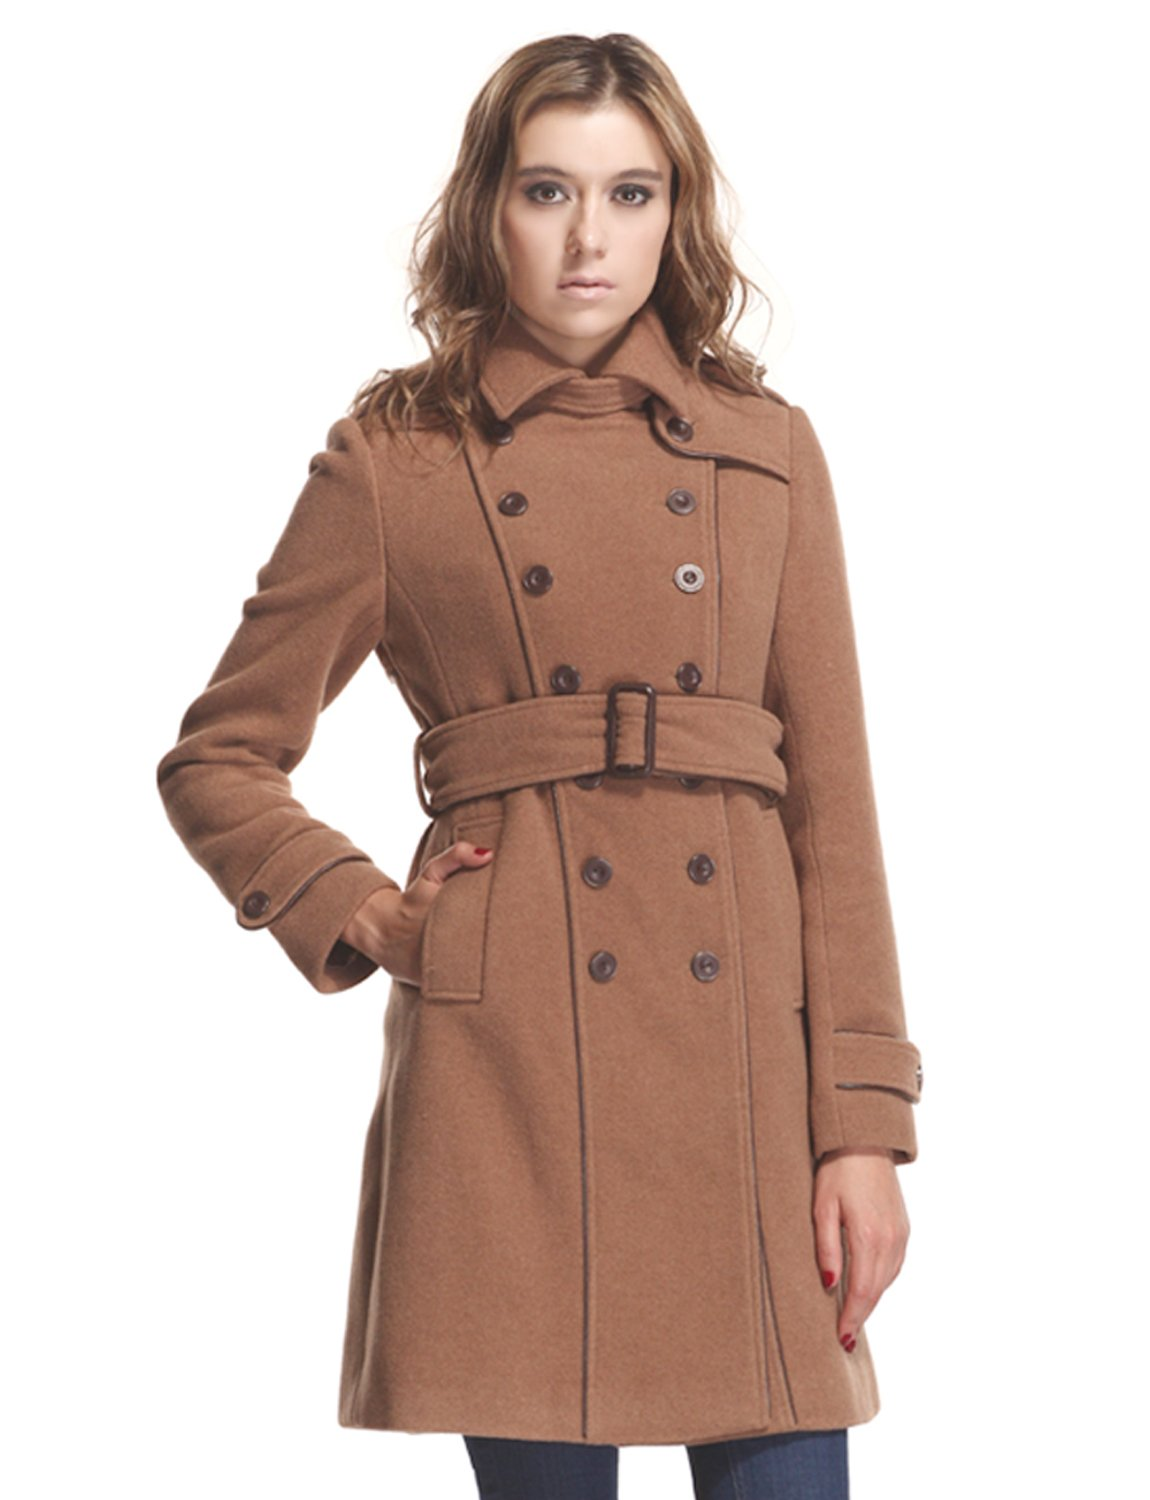 ZAREEN Women's Wool Blend Coat With Trench Style (Large, Camel) by ZAREEN